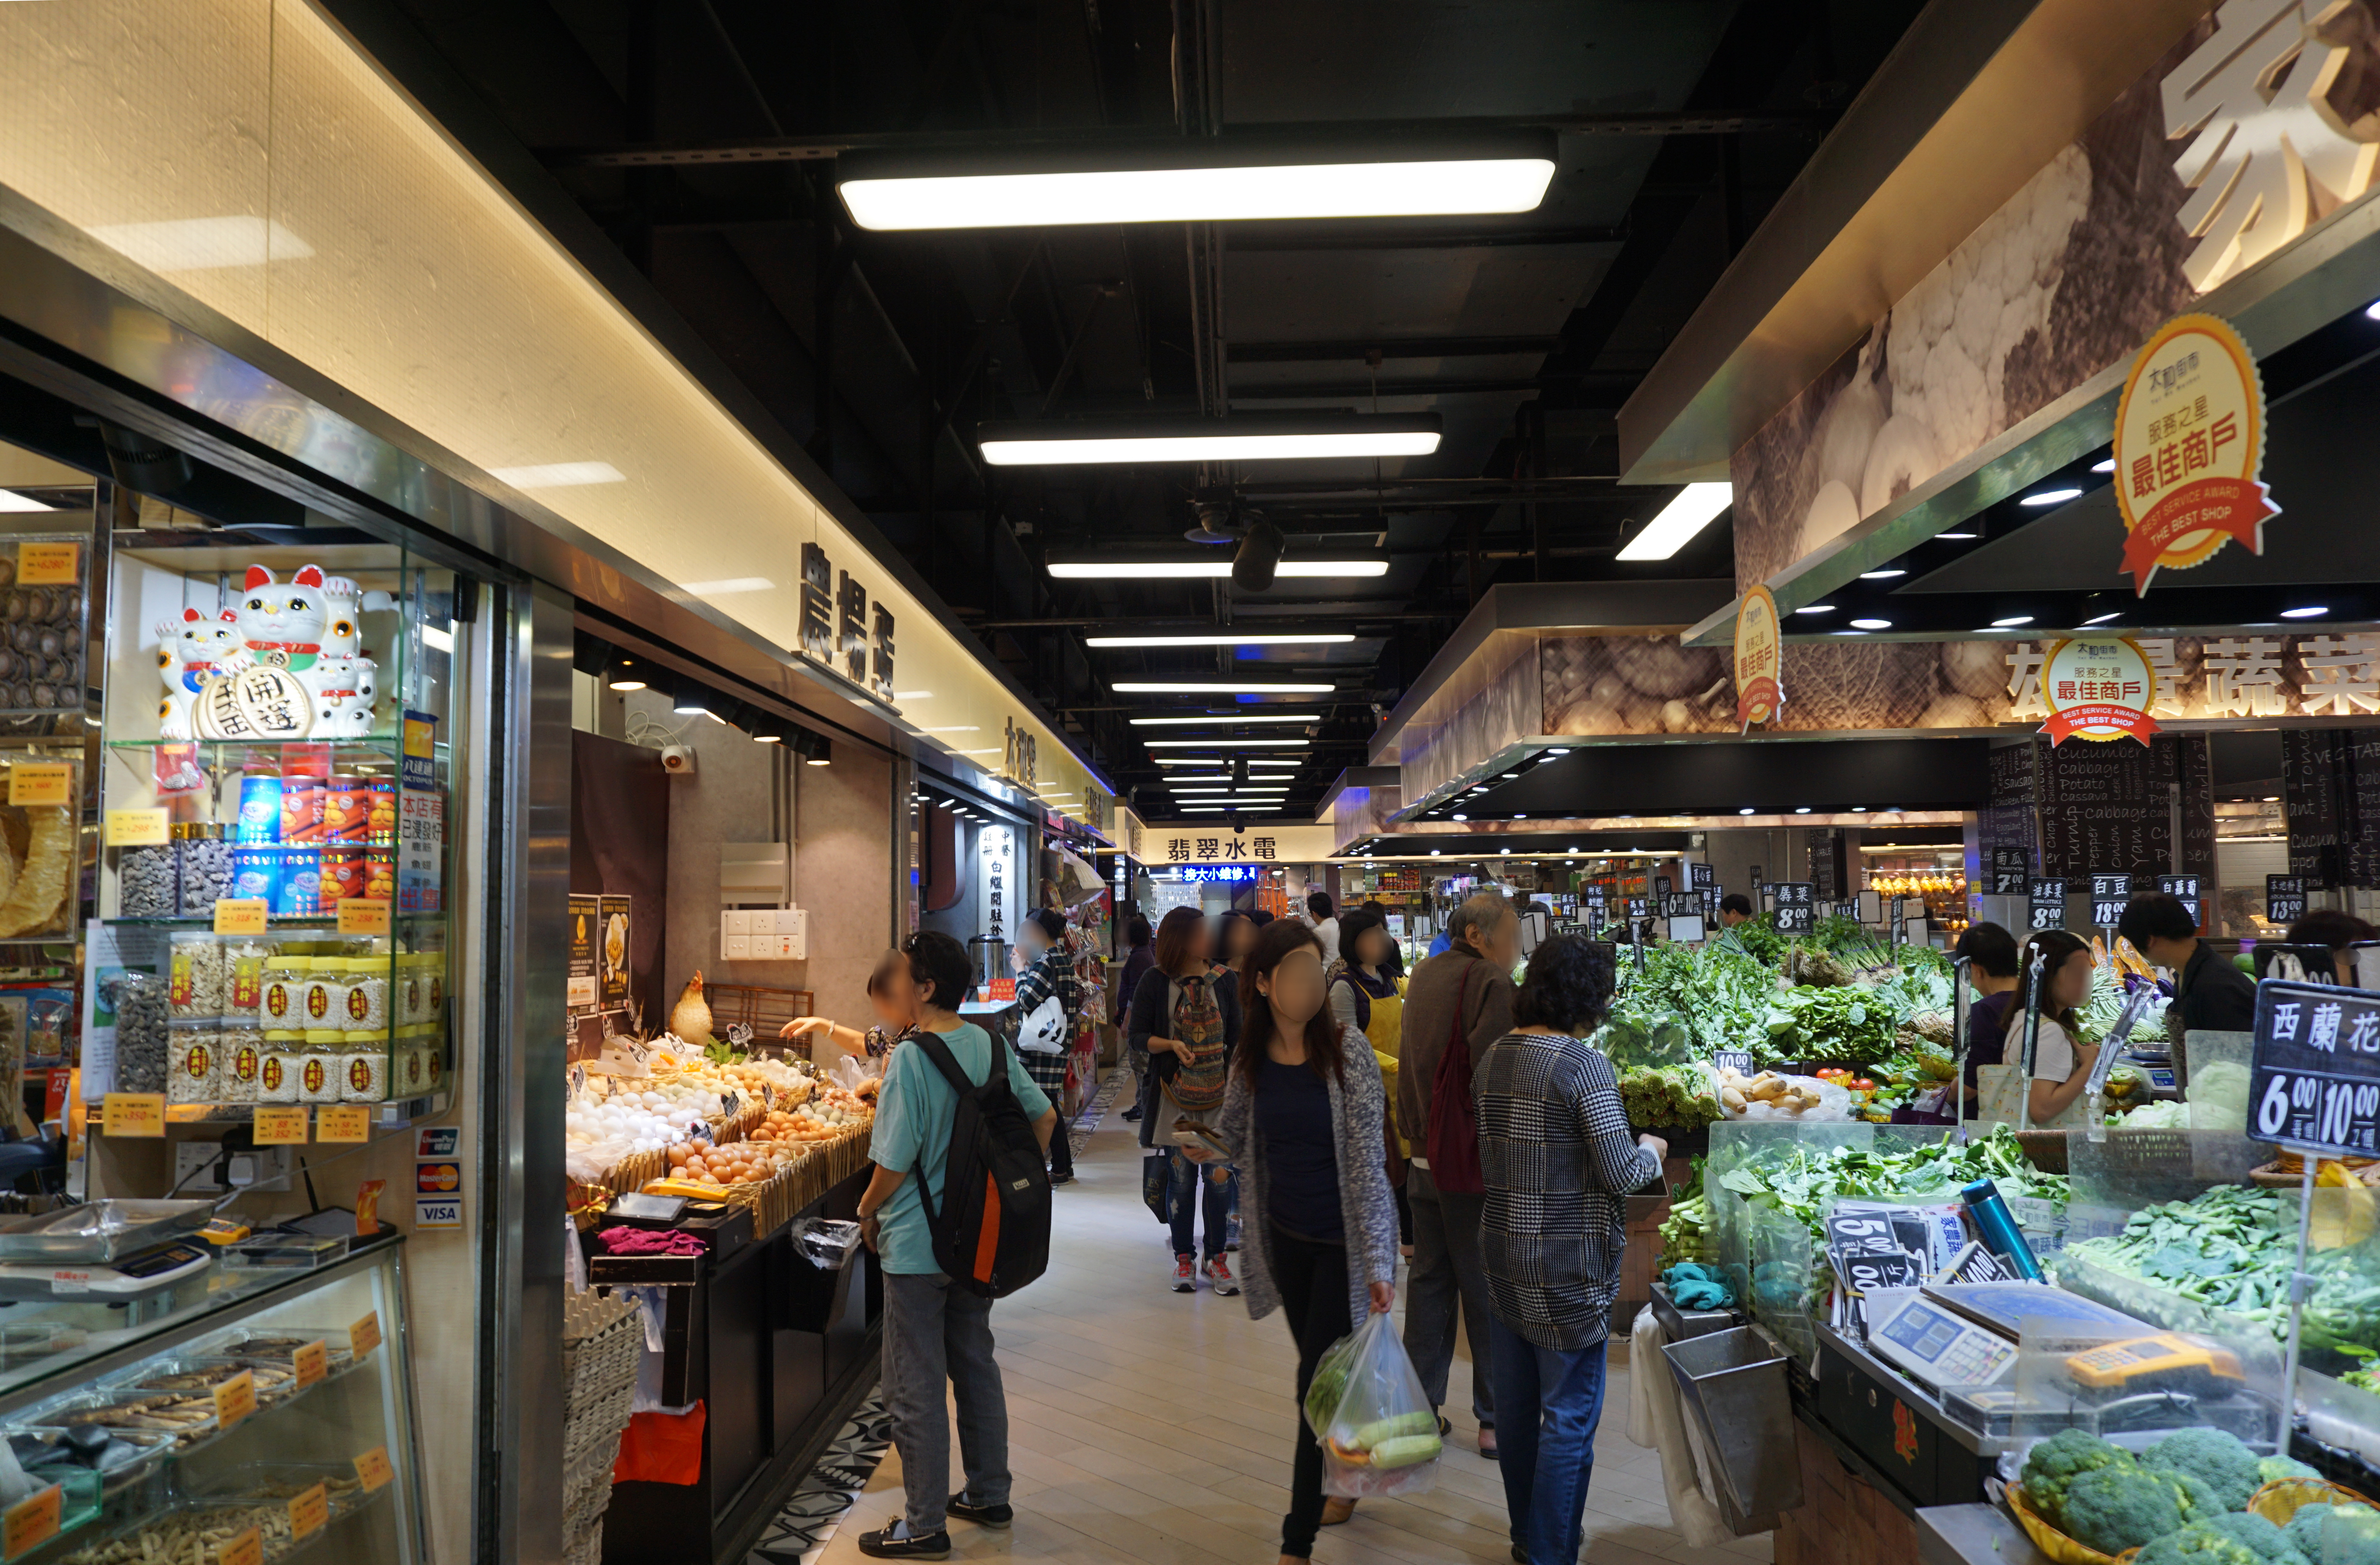 Tai Wo Market after renovation.jpg English: Tai Wo Market in Tai Po, Hong Kong. Date 21 March 2017, 15:27:16 Source Own work Author Exploringlife